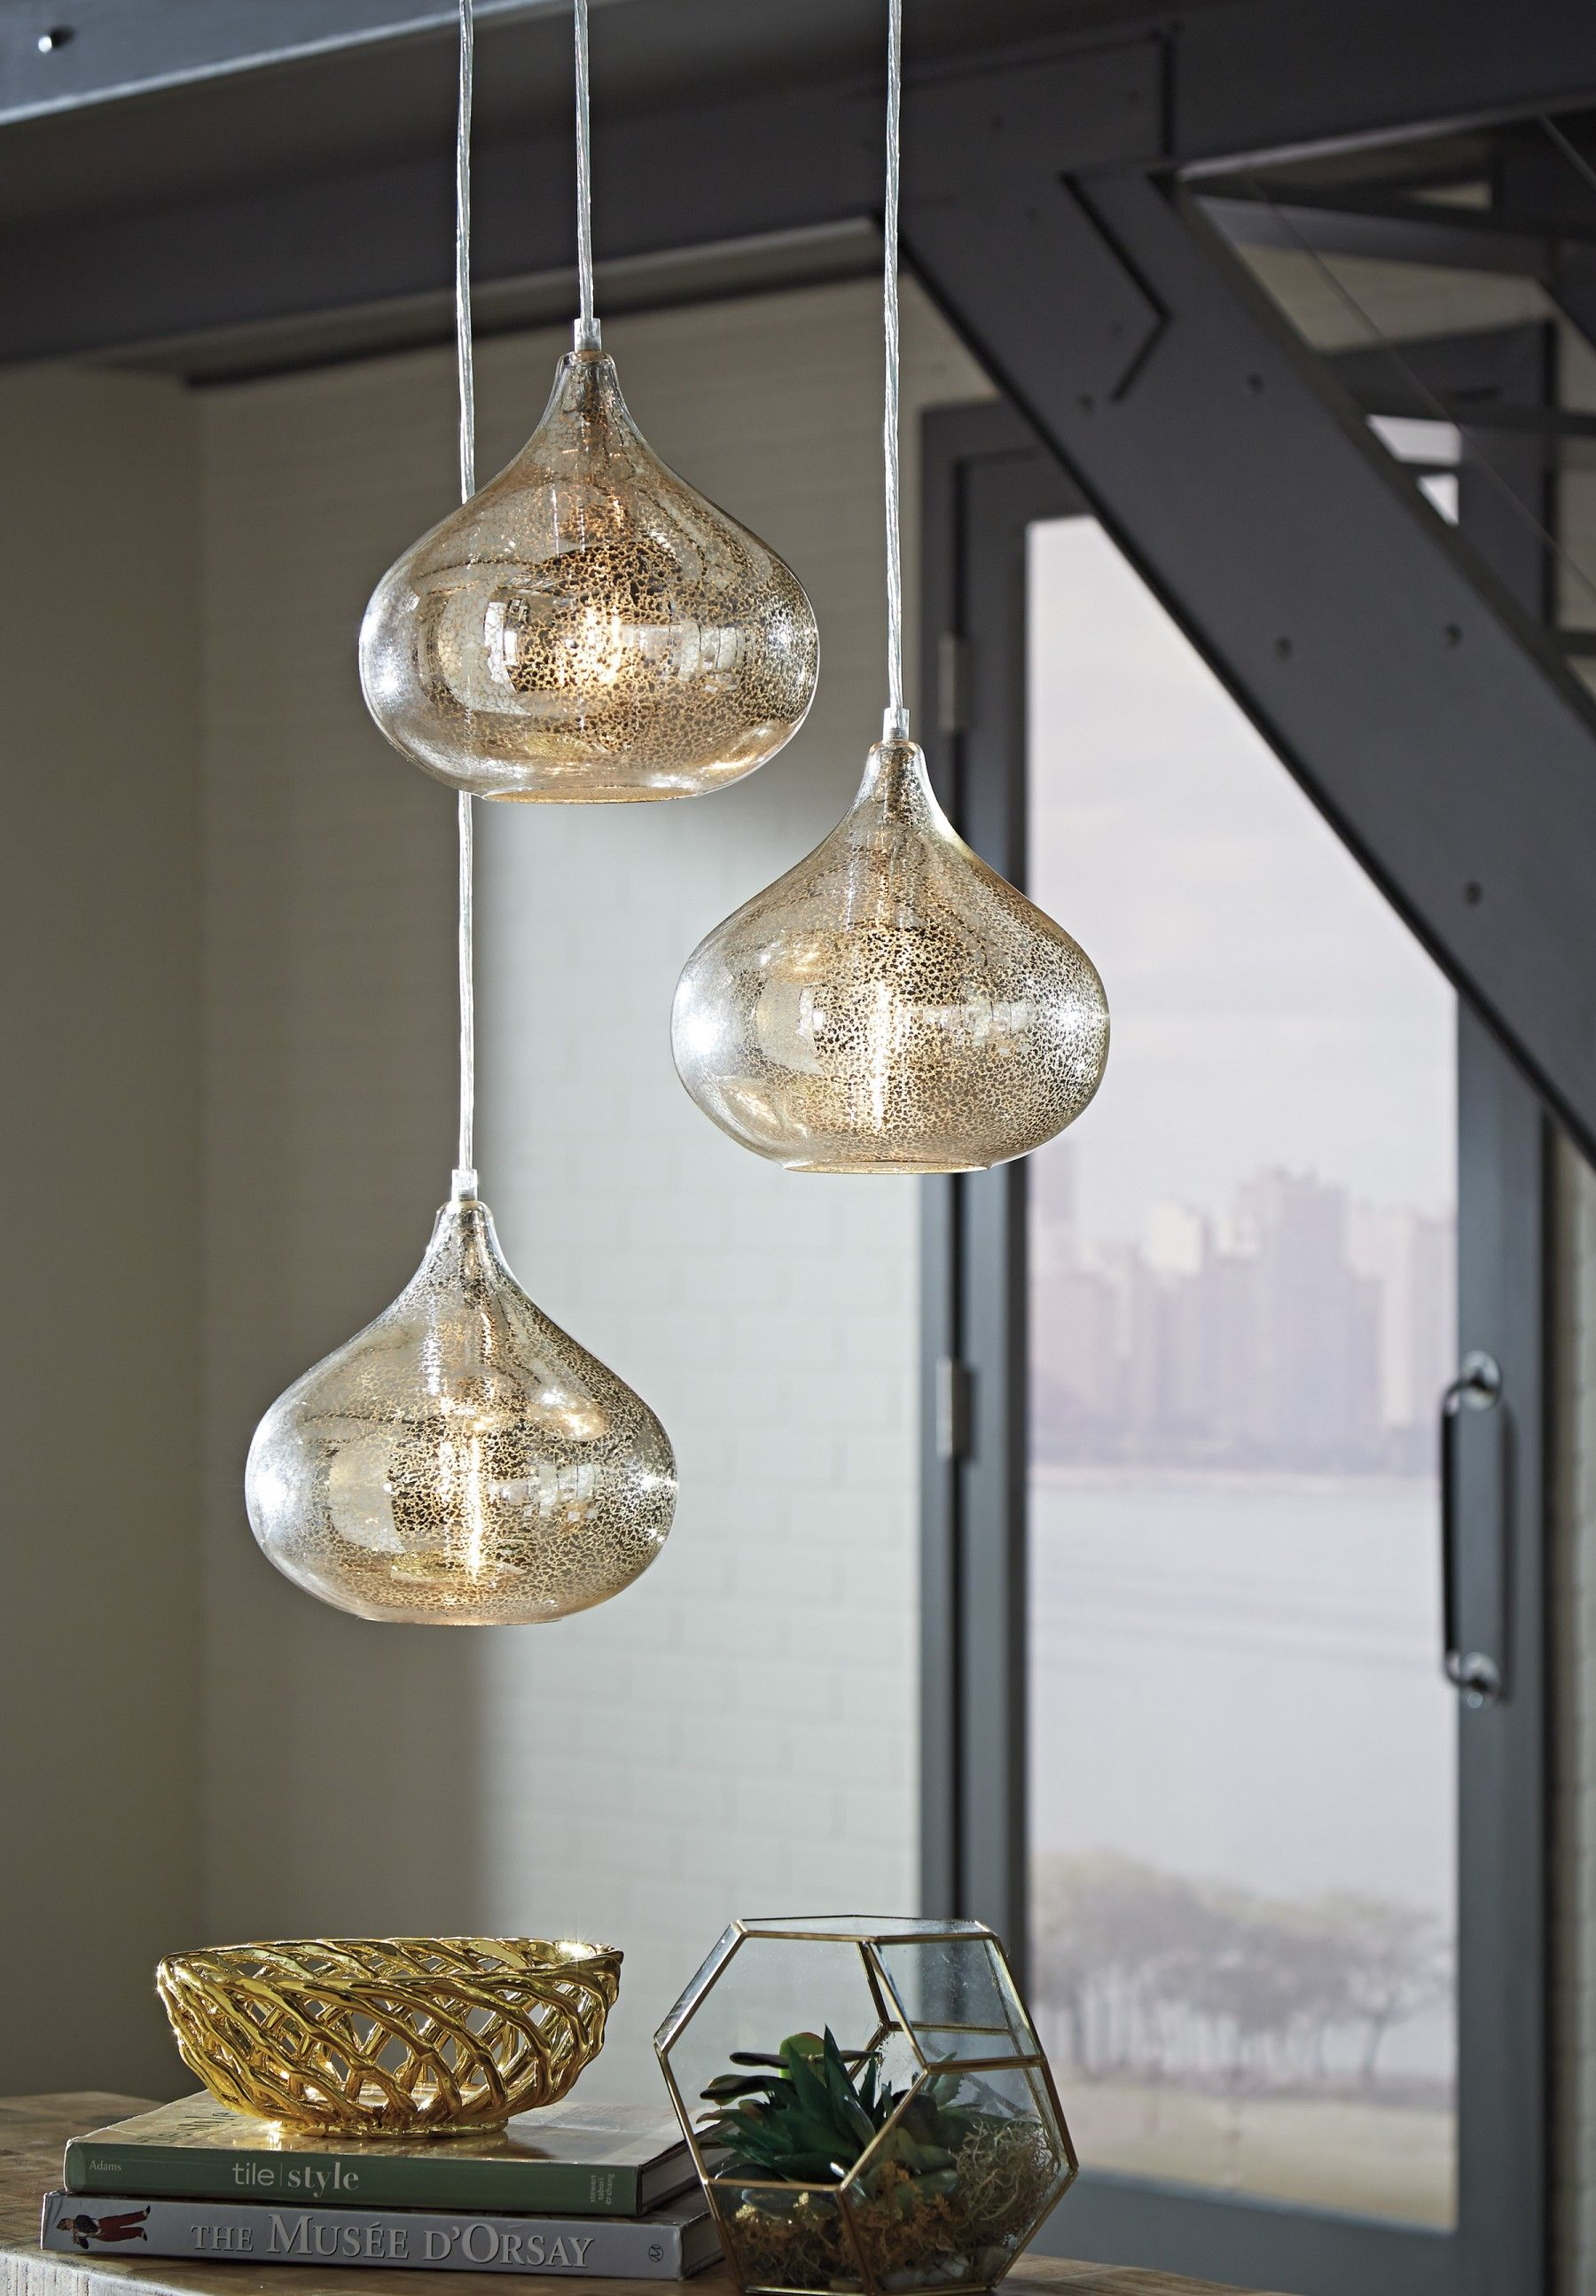 style mini ppn pendantpolished of shocking nickel lights image files and glass hounslow light pendant mercury